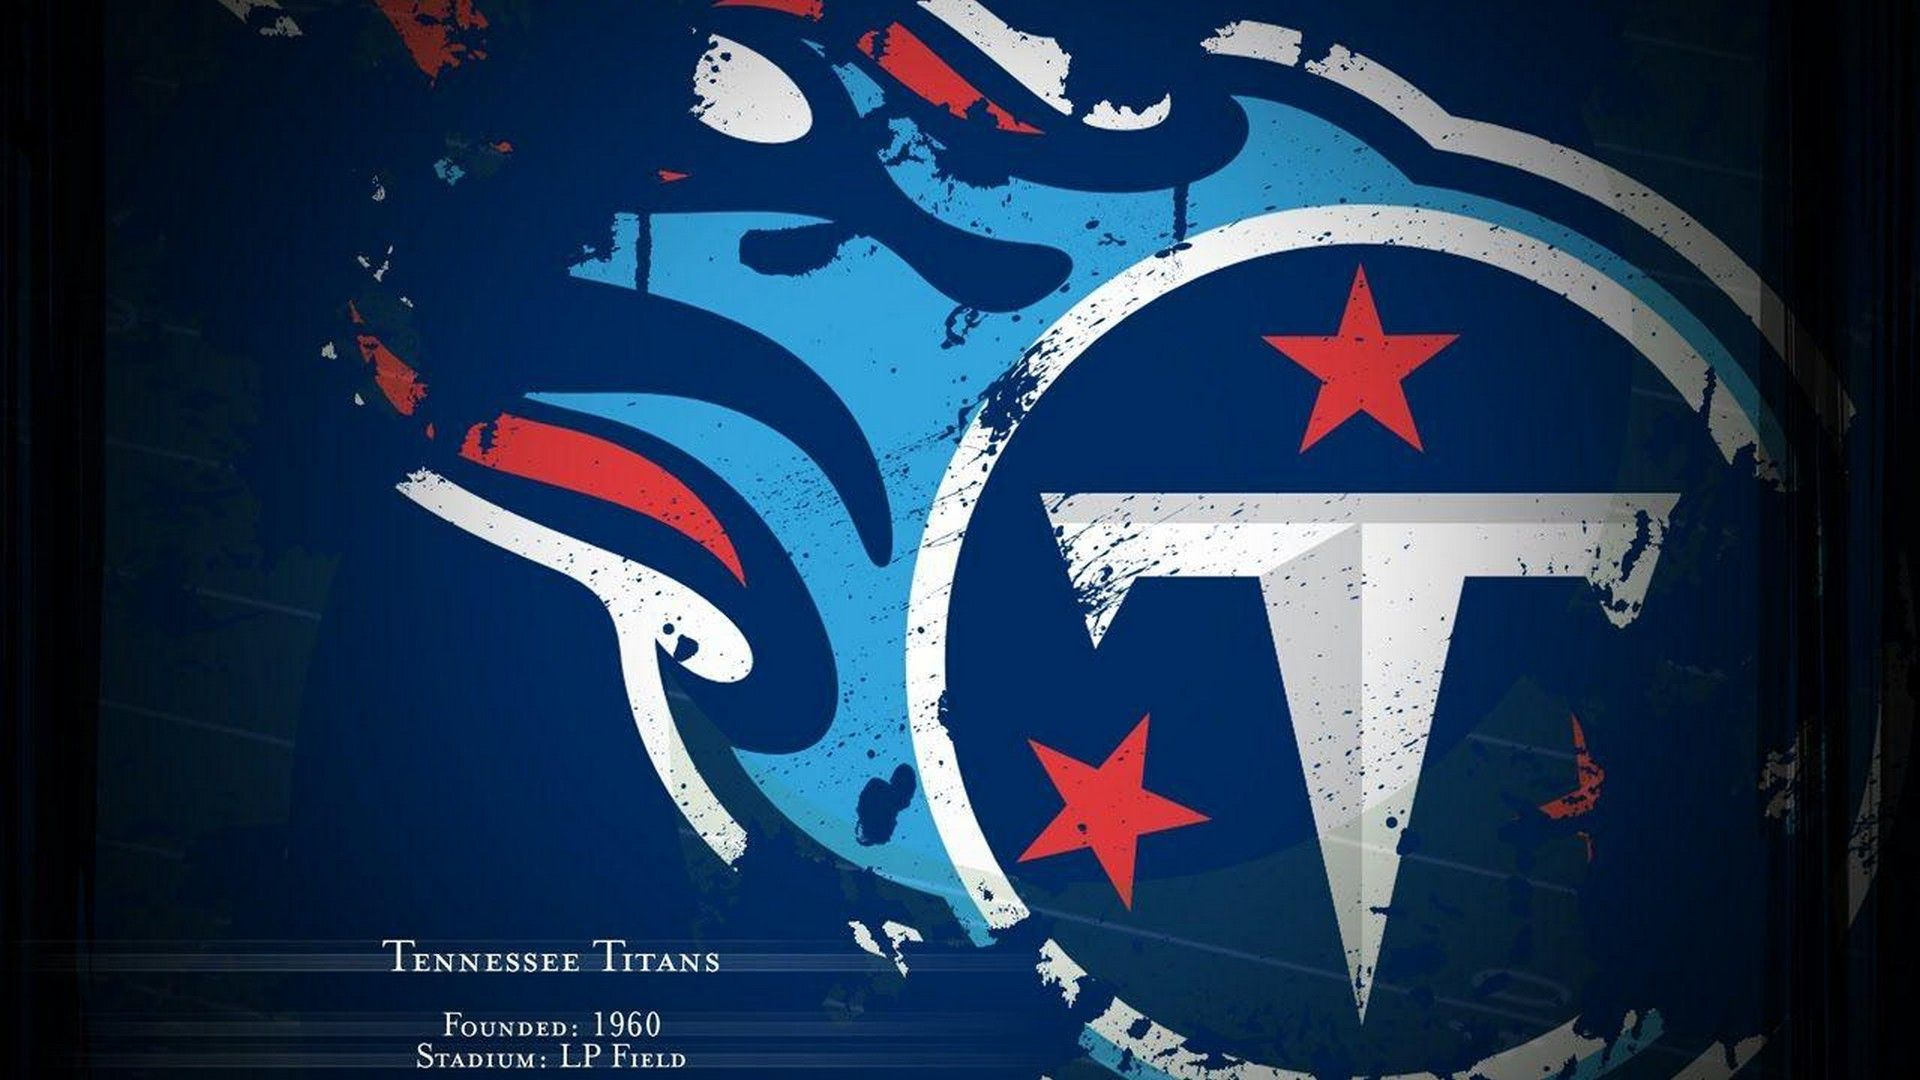 Tennessee Titans For Mac Tennessee titans, Football